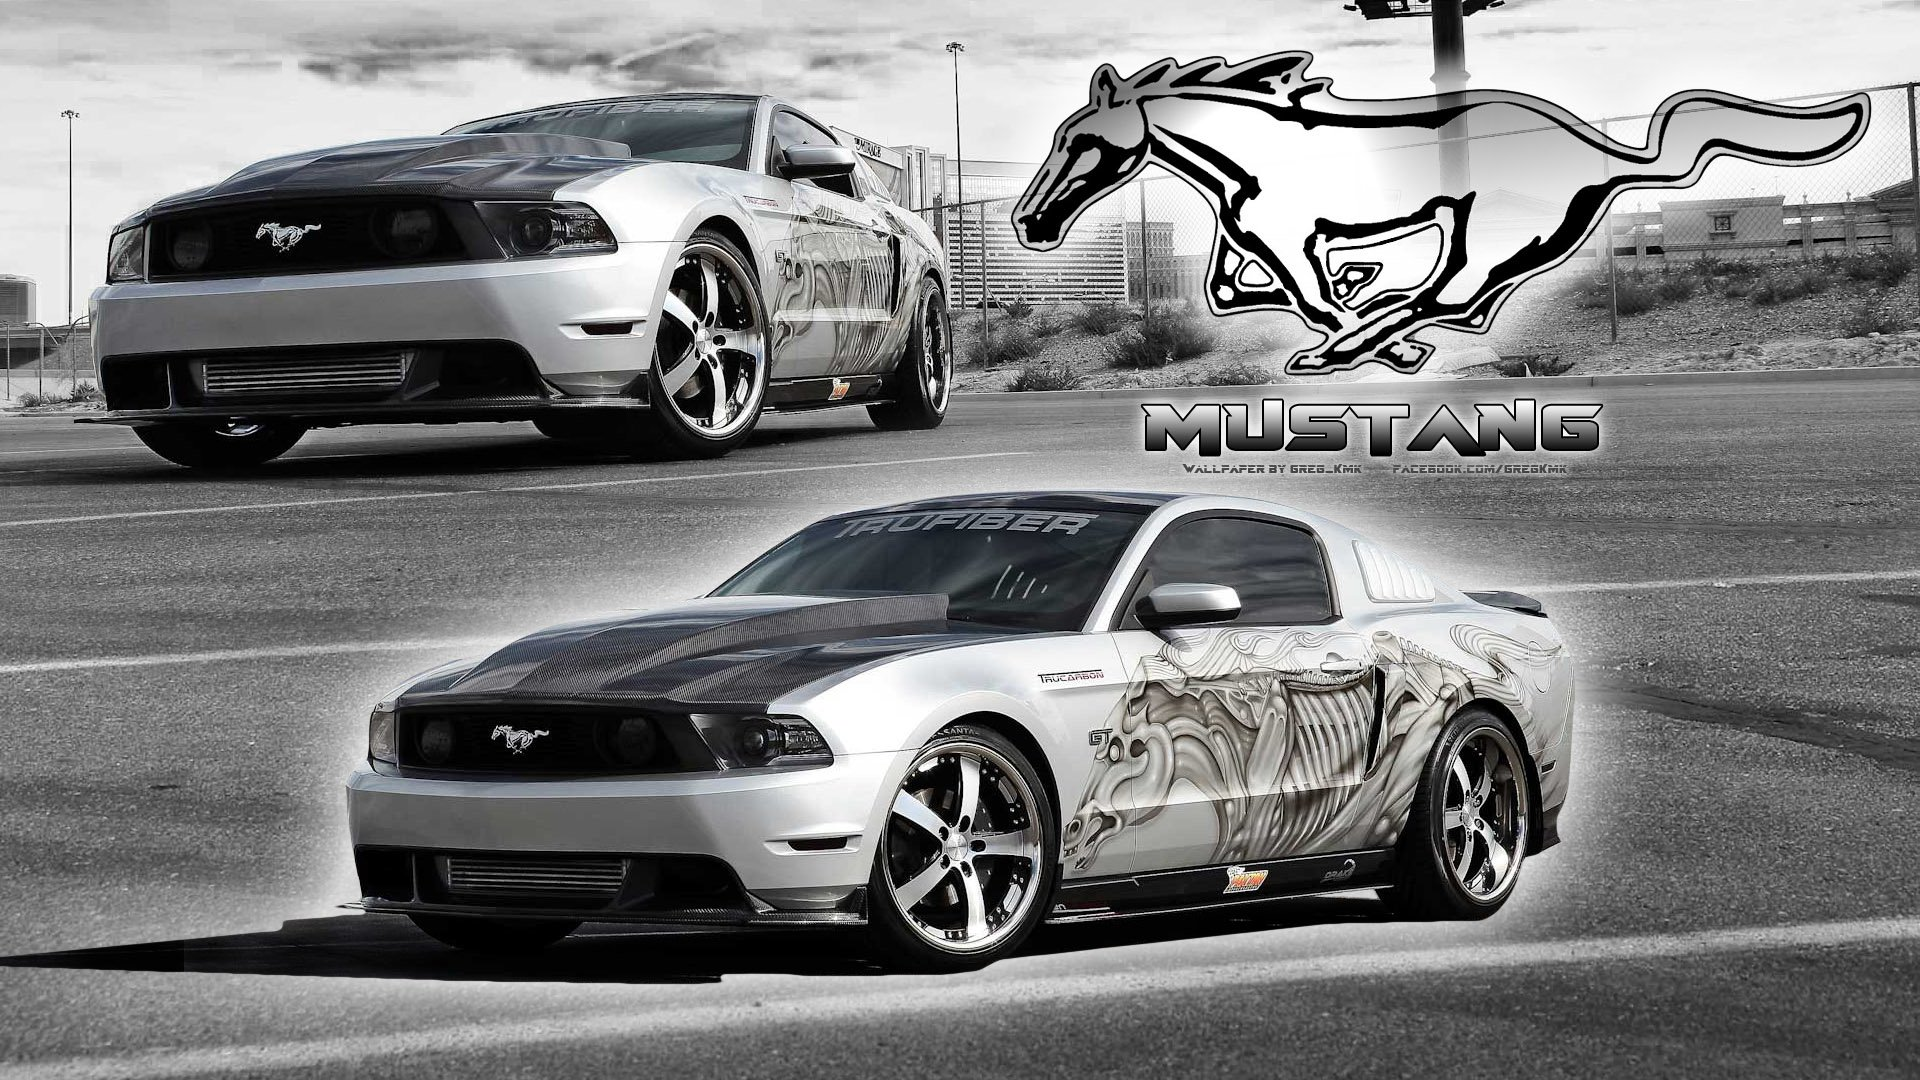 Vehicles - Ford Mustang  Ford Tuning Greg_Kmk Wallpaper